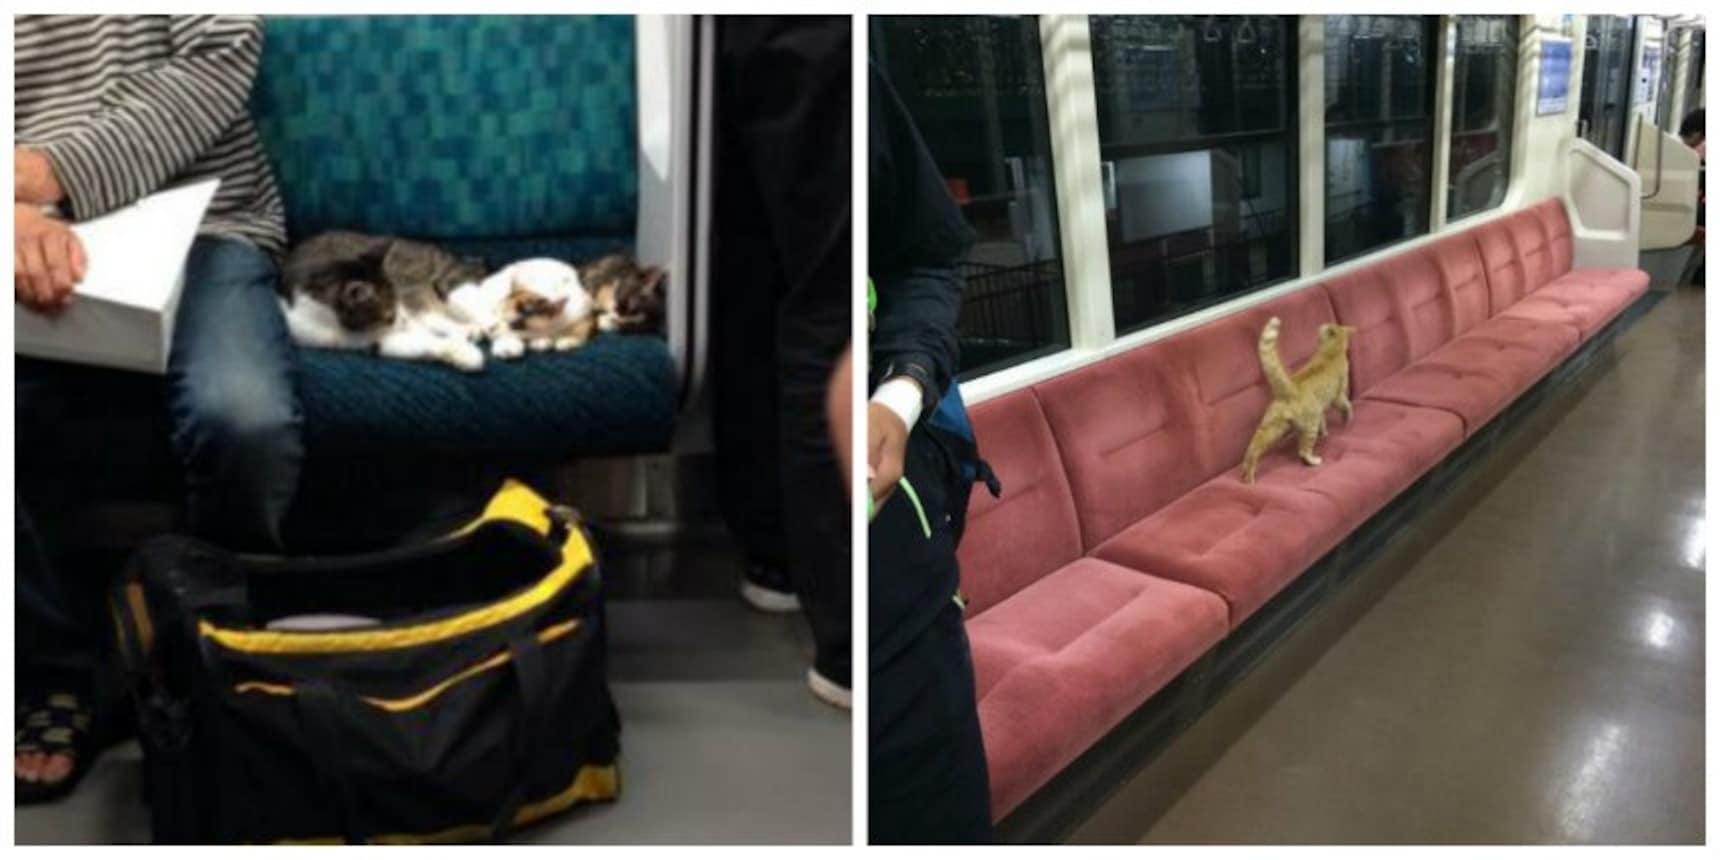 Curious Cats Sneak onto Trains